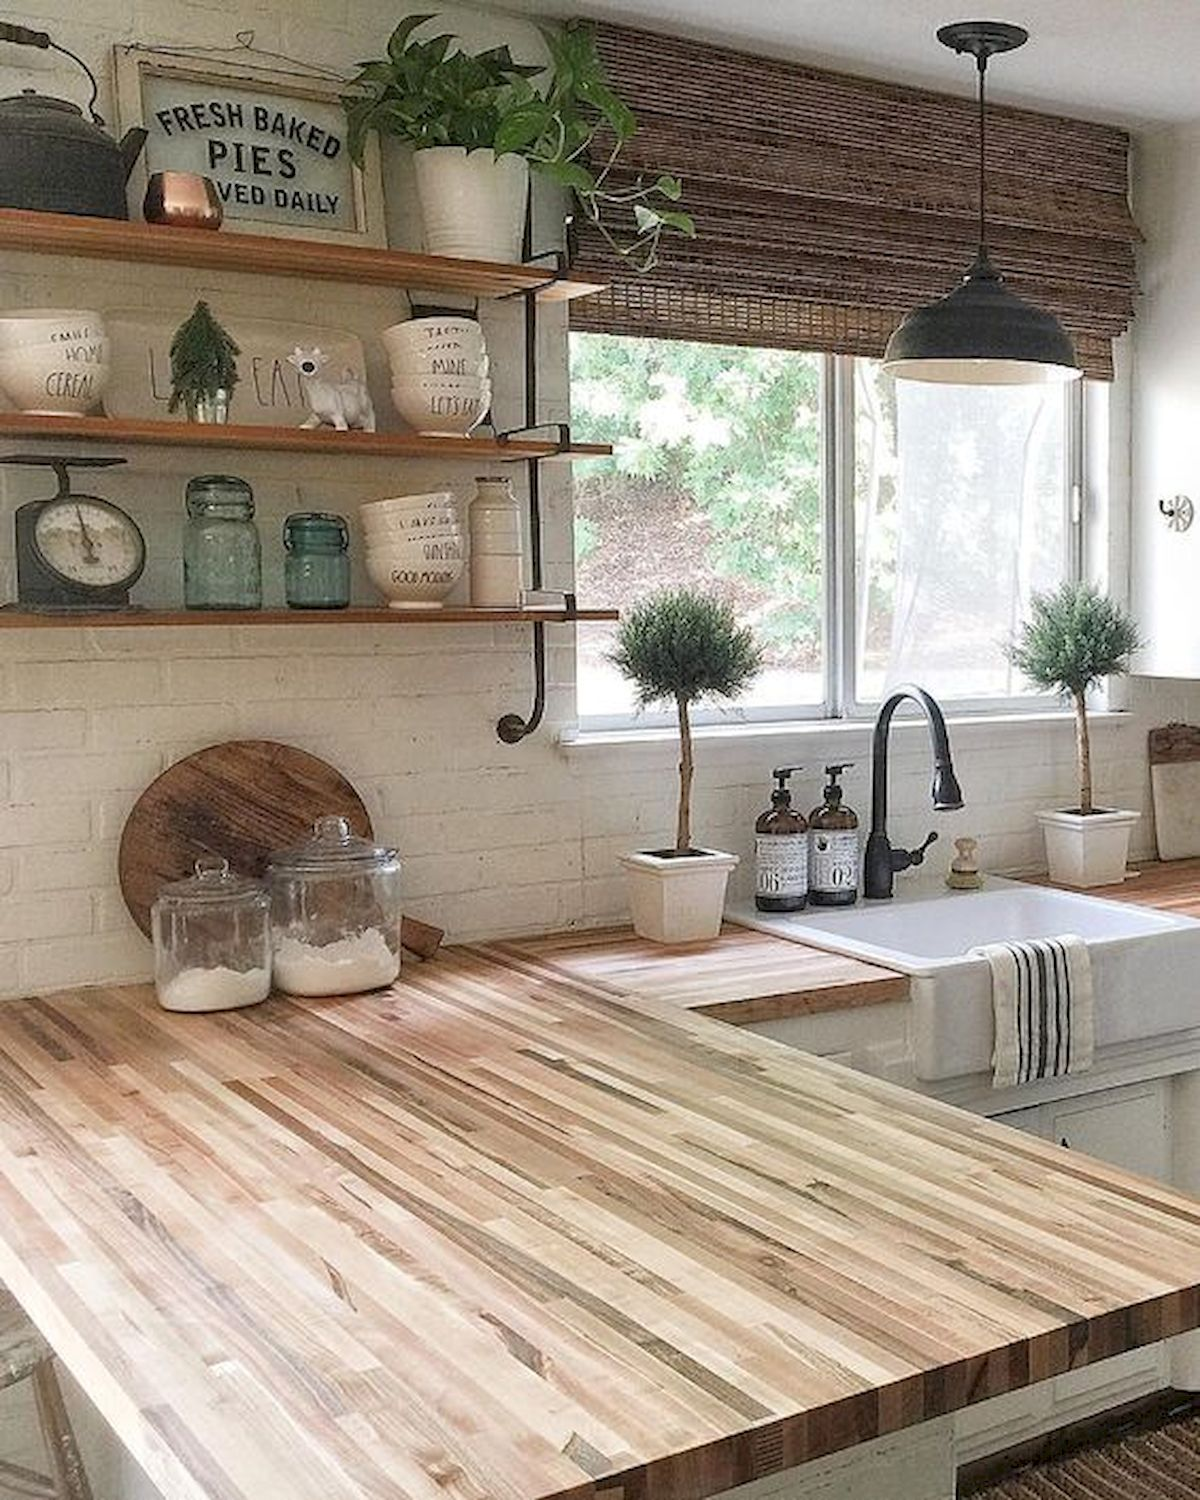 60 Great Farmhouse Kitchen Countertops Design Ideas And ... on Modern:egvna1Wjfco= Kitchen Counter Decor  id=30764